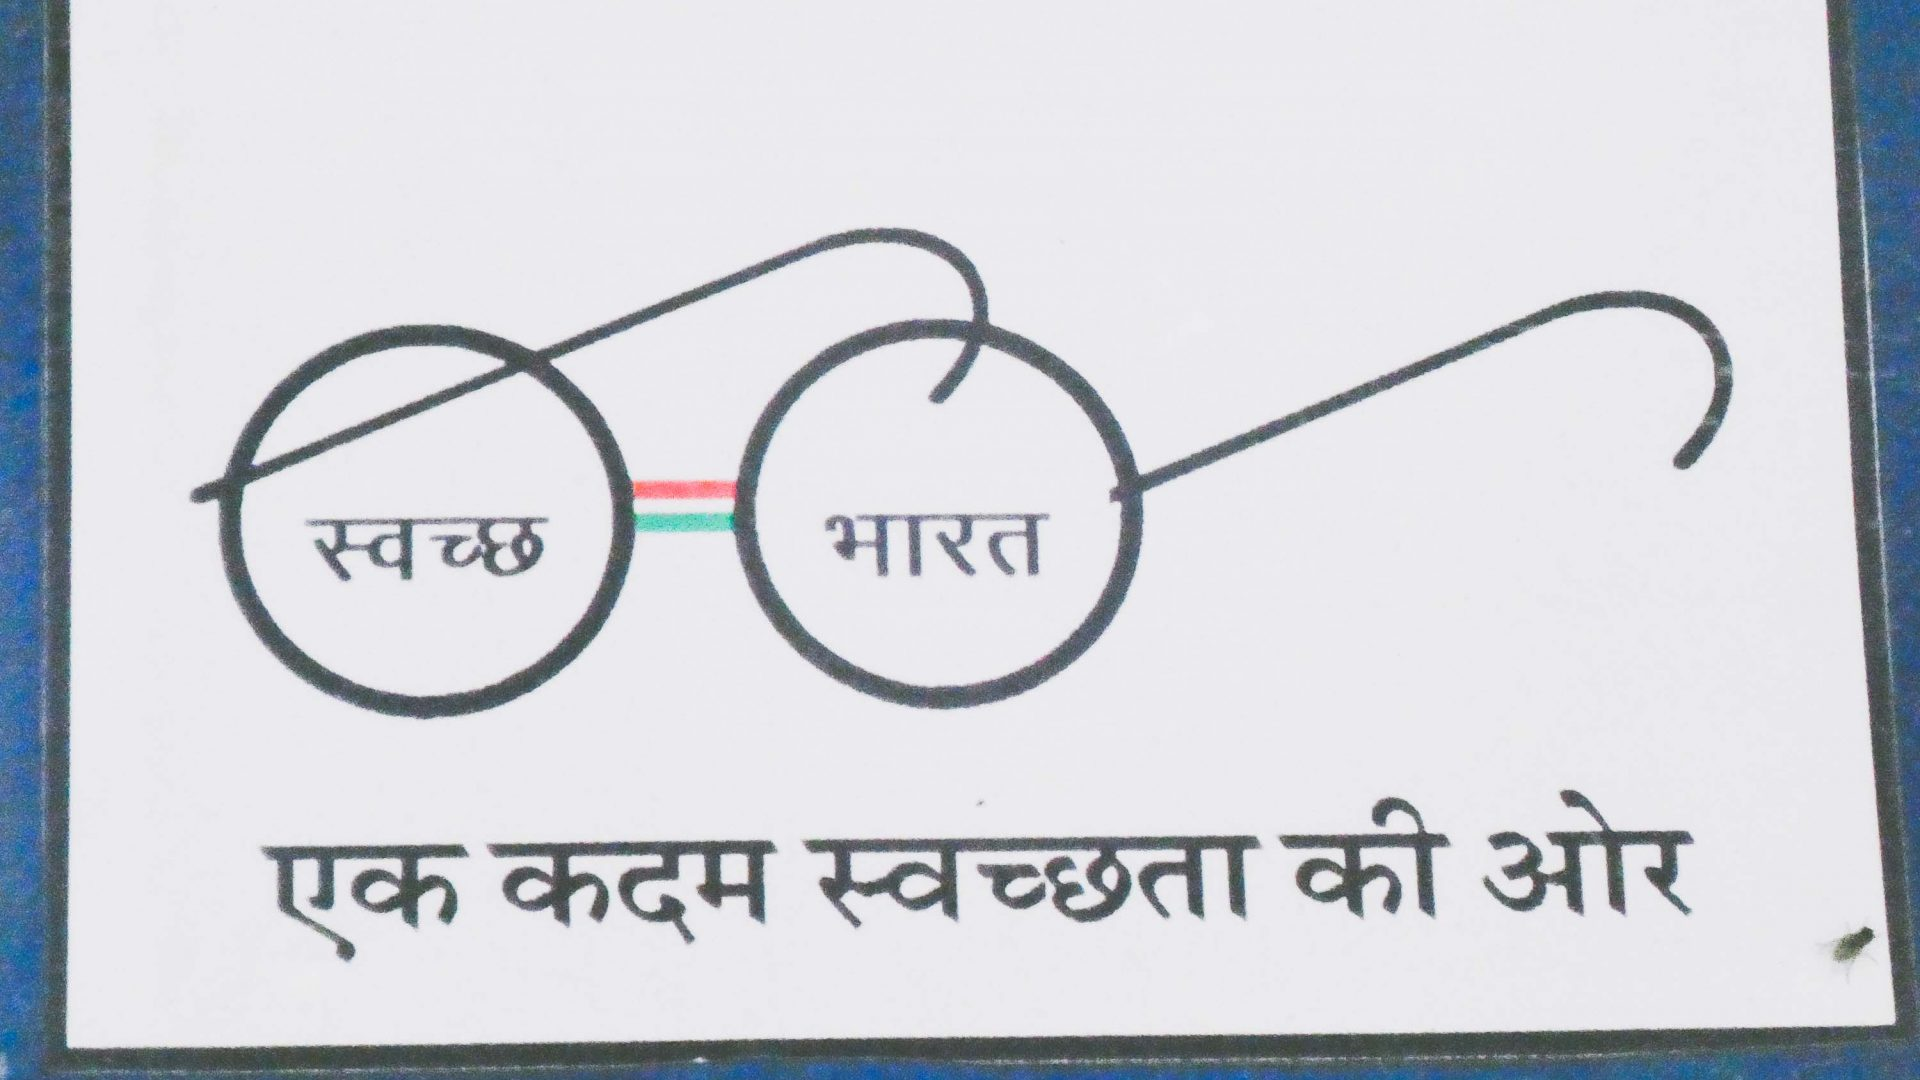 Gandhi's glasses form part of the official Clean India campaign.